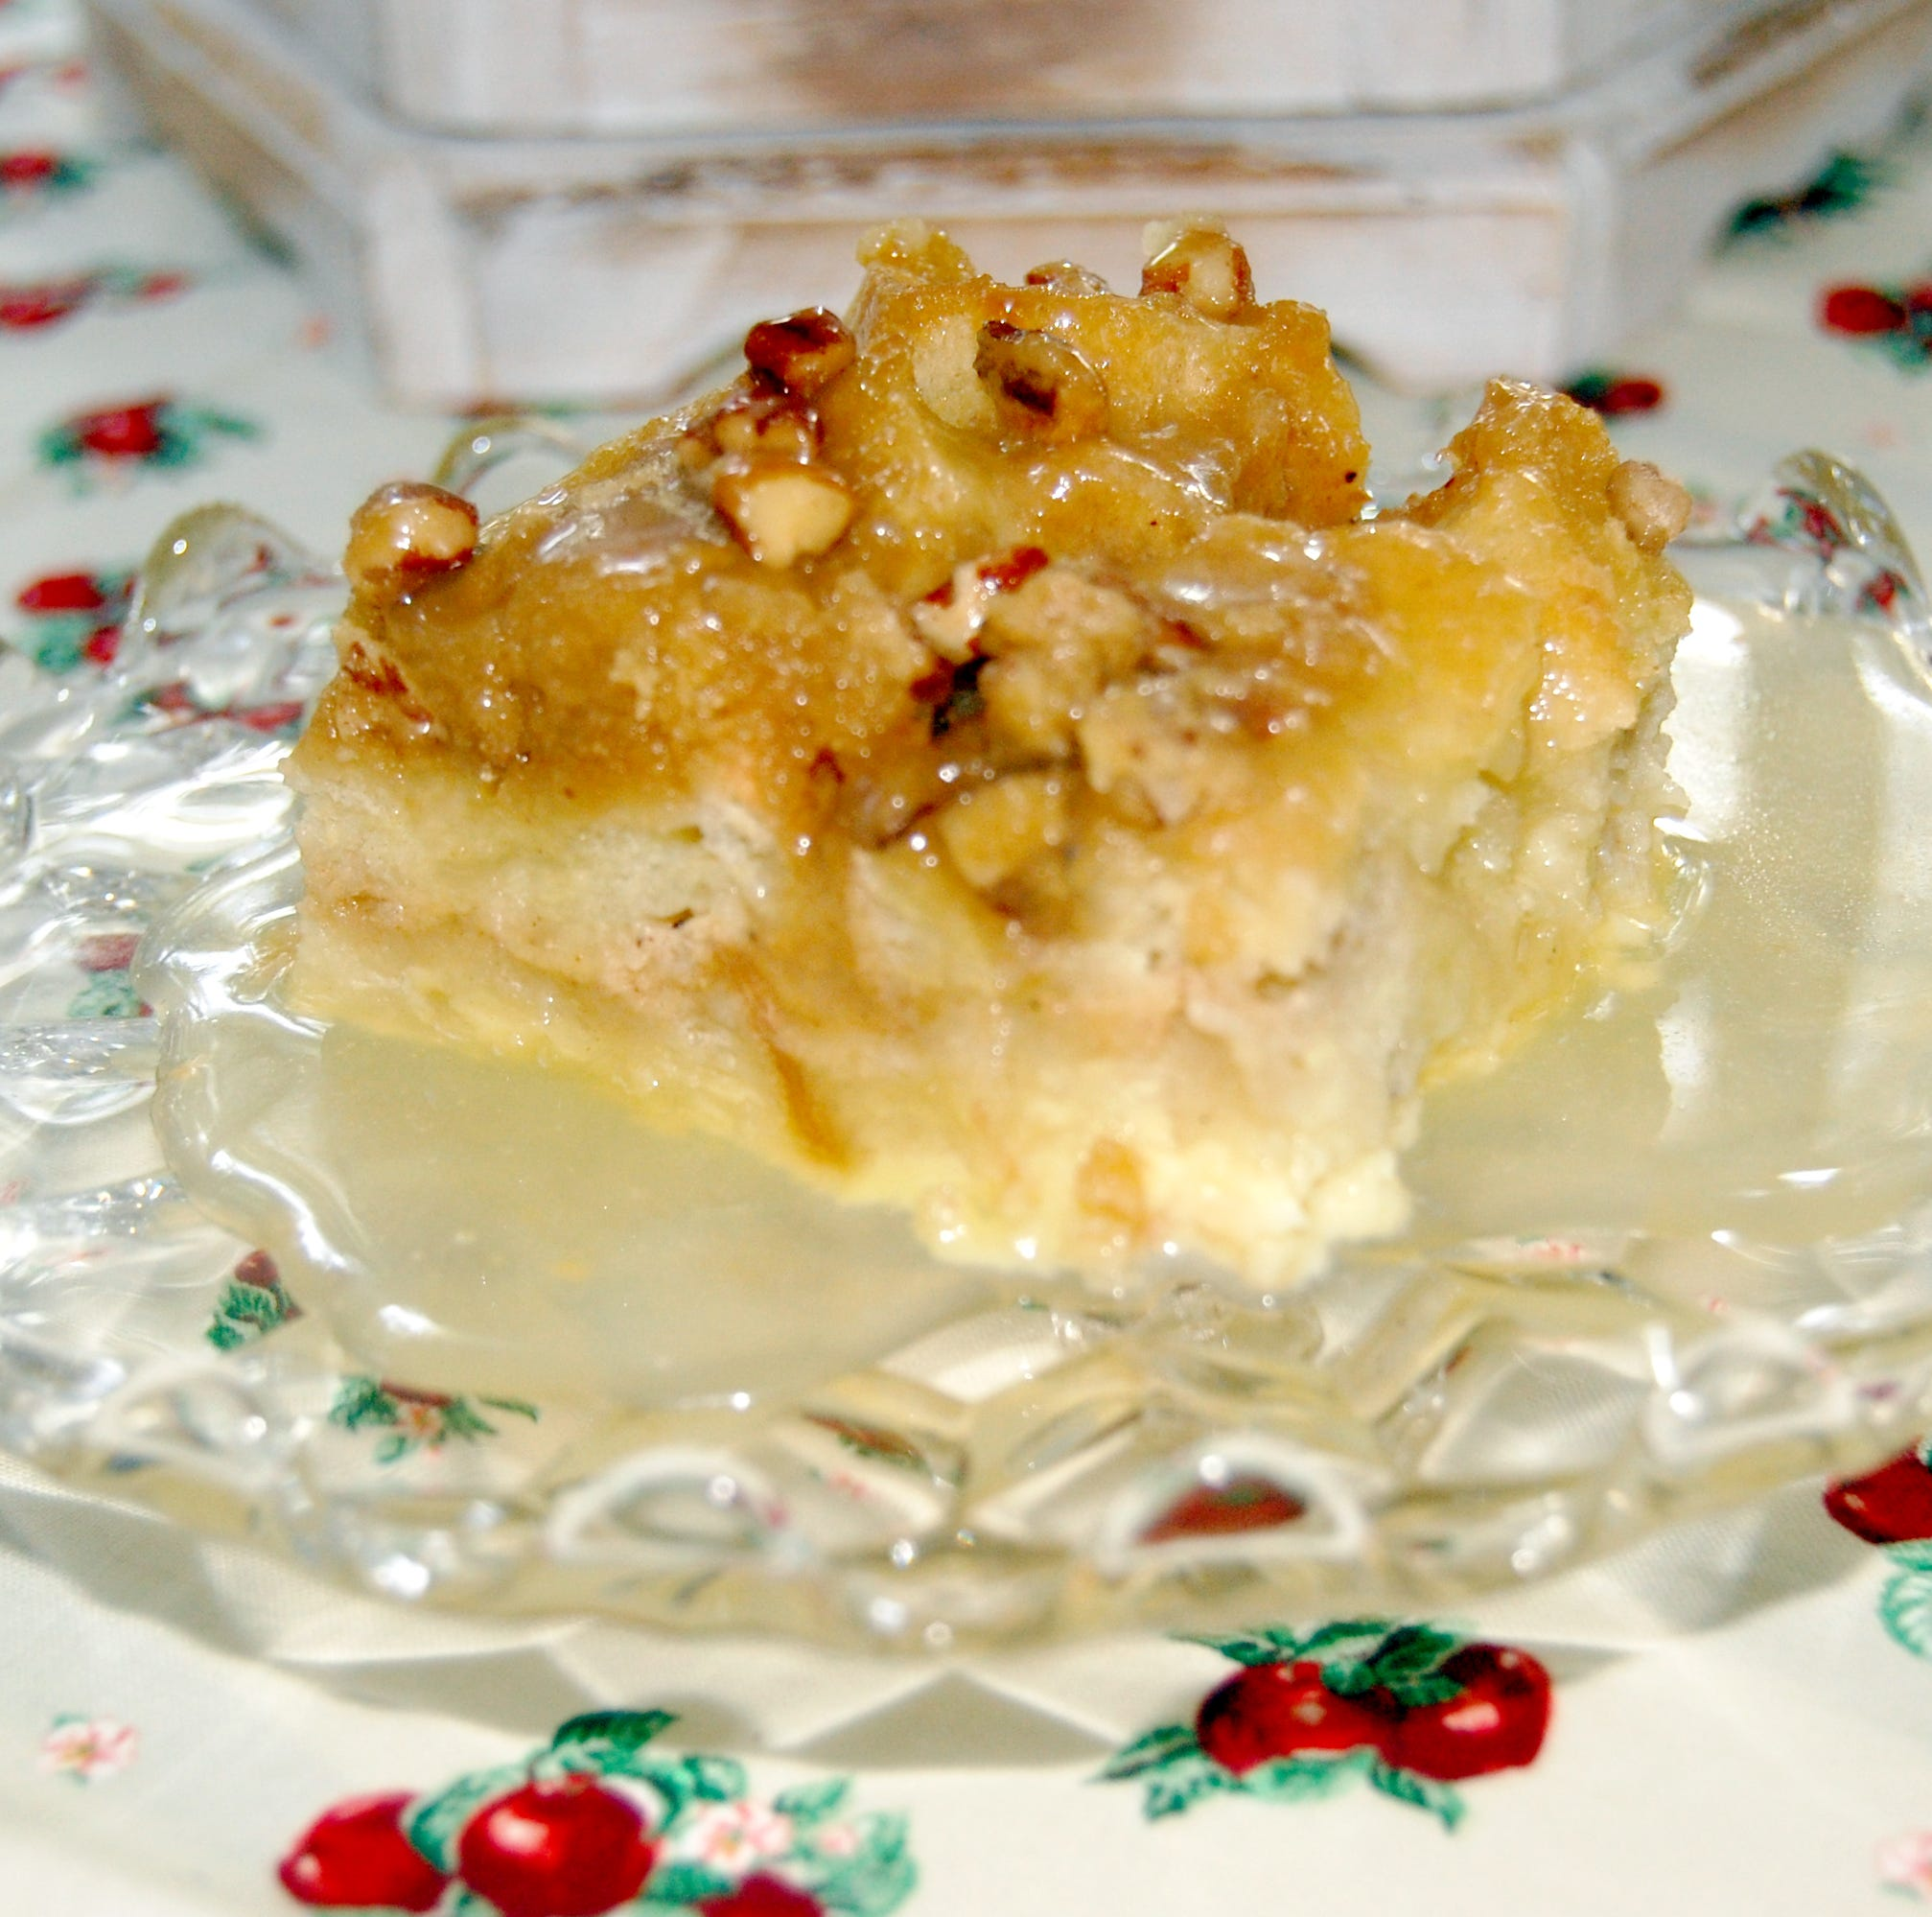 Apple streusel bread pudding with butter rum sauce a delicious dessert | Sweet & Savory